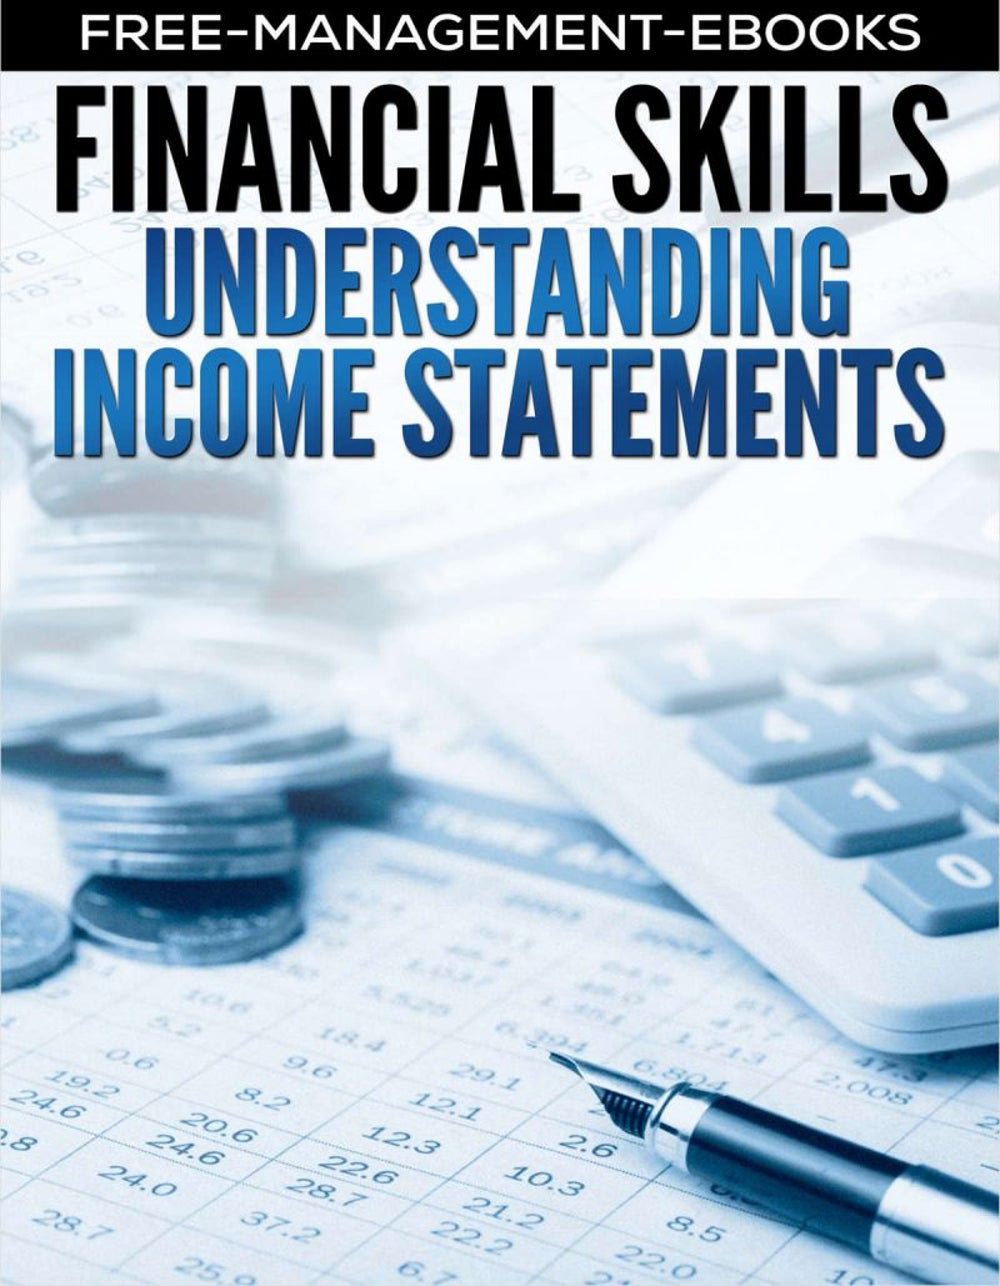 """Income Statements – Developing Your Finance Skills"""